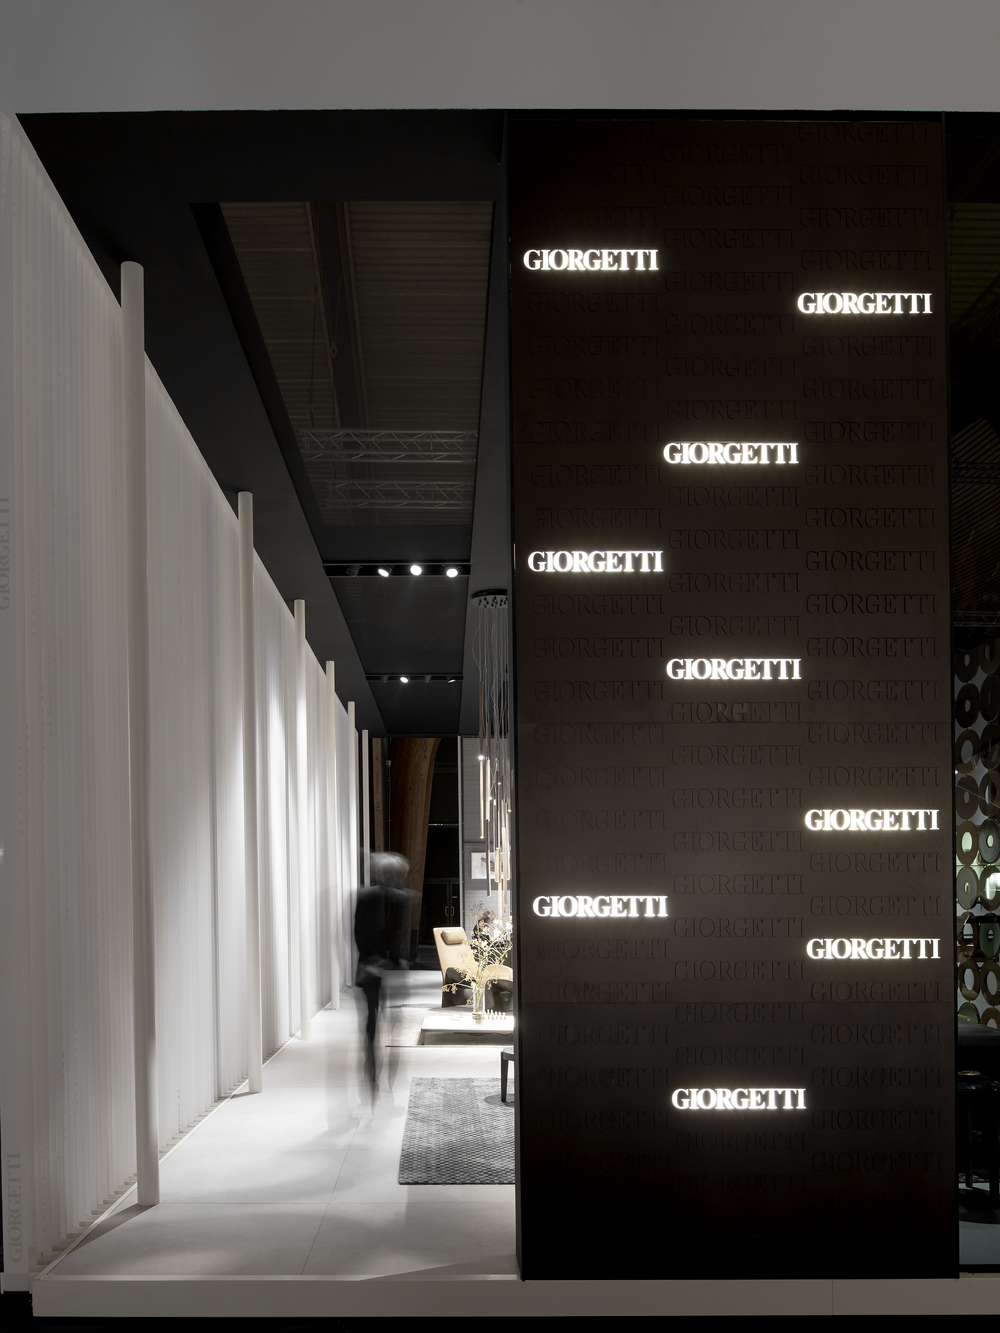 Giorgetti at Interieur Kortrijk